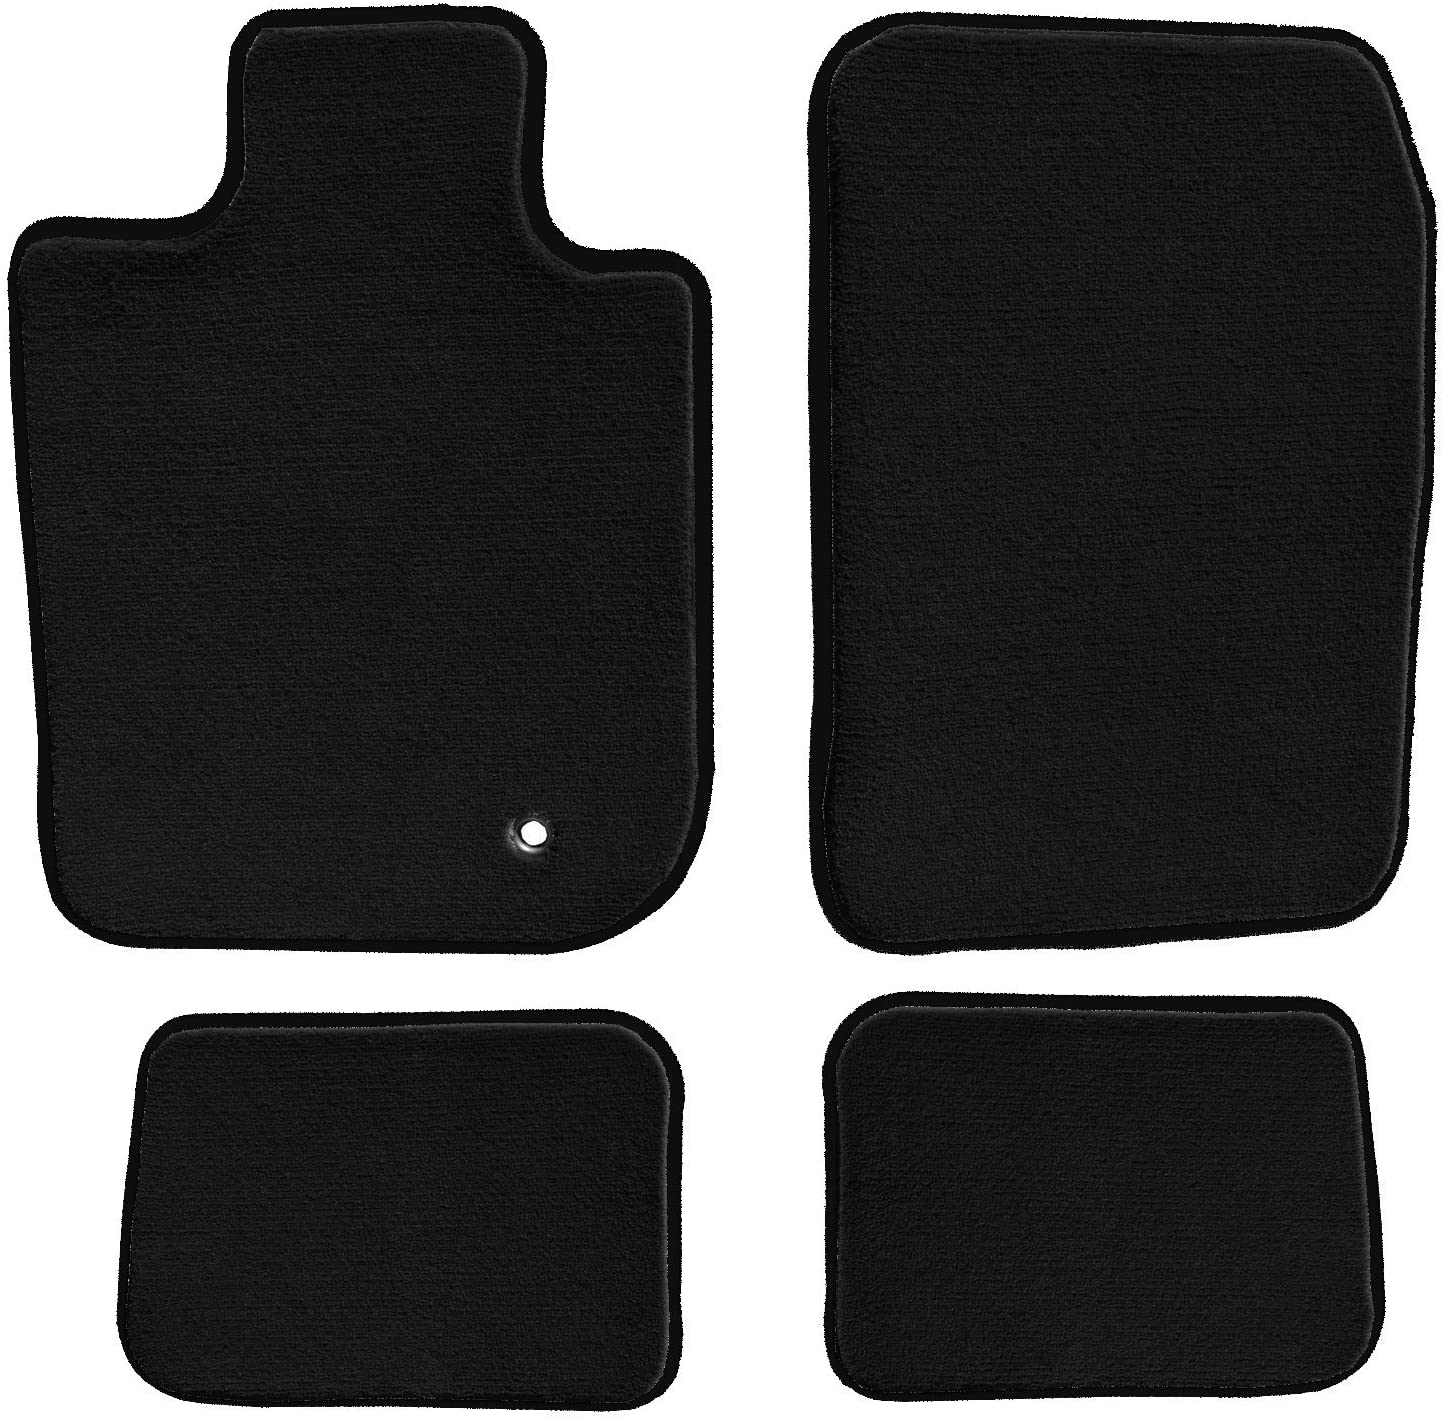 GGBAILEY D3874A-S1A-BK-LP Ranking integrated Max 79% OFF 1st place Custom Fit Car 2011 for 20 Mats 2010